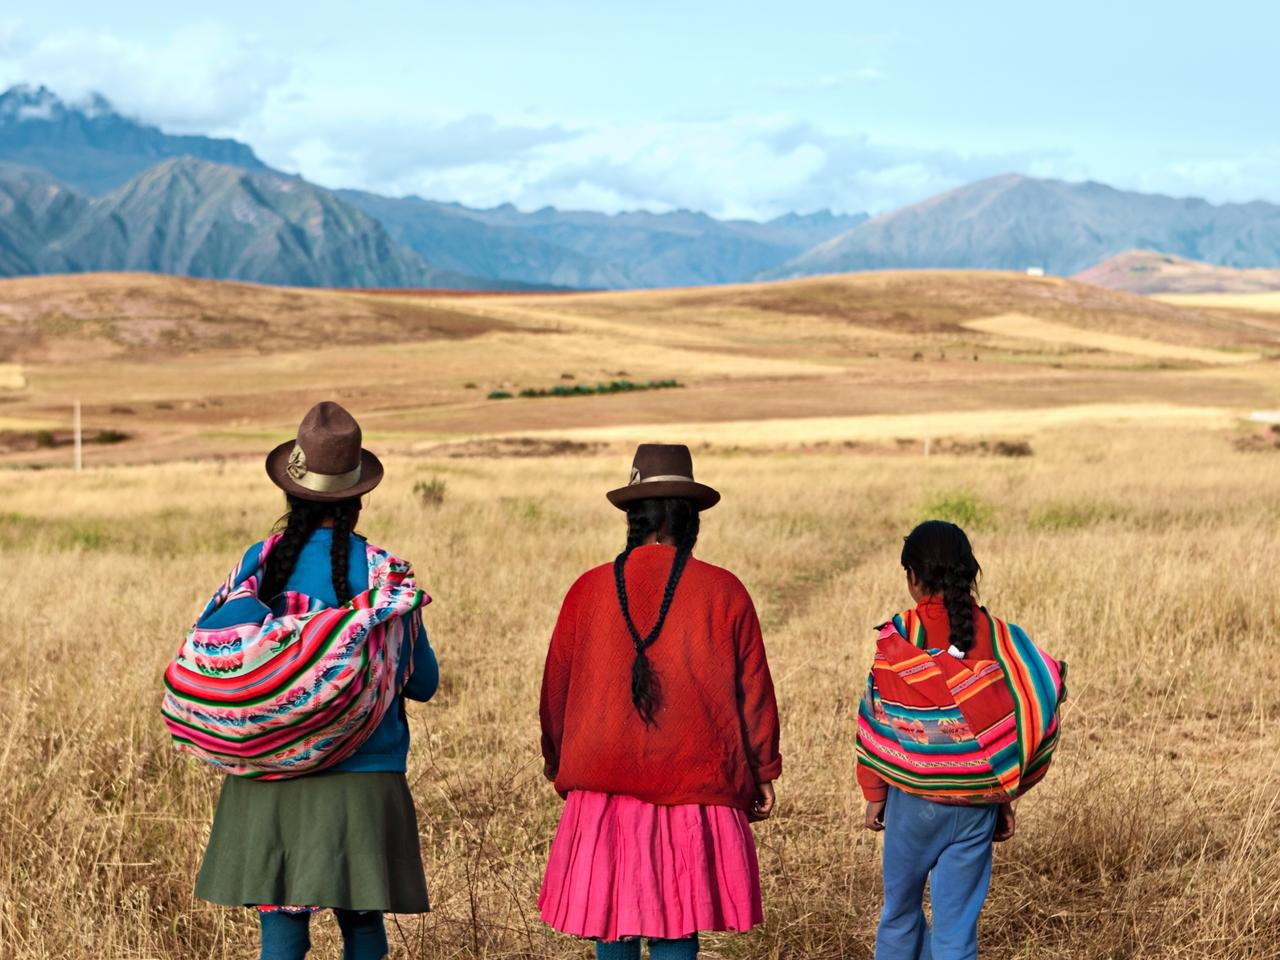 Peruvian women in national clothing, The Sacred Valley, Peru